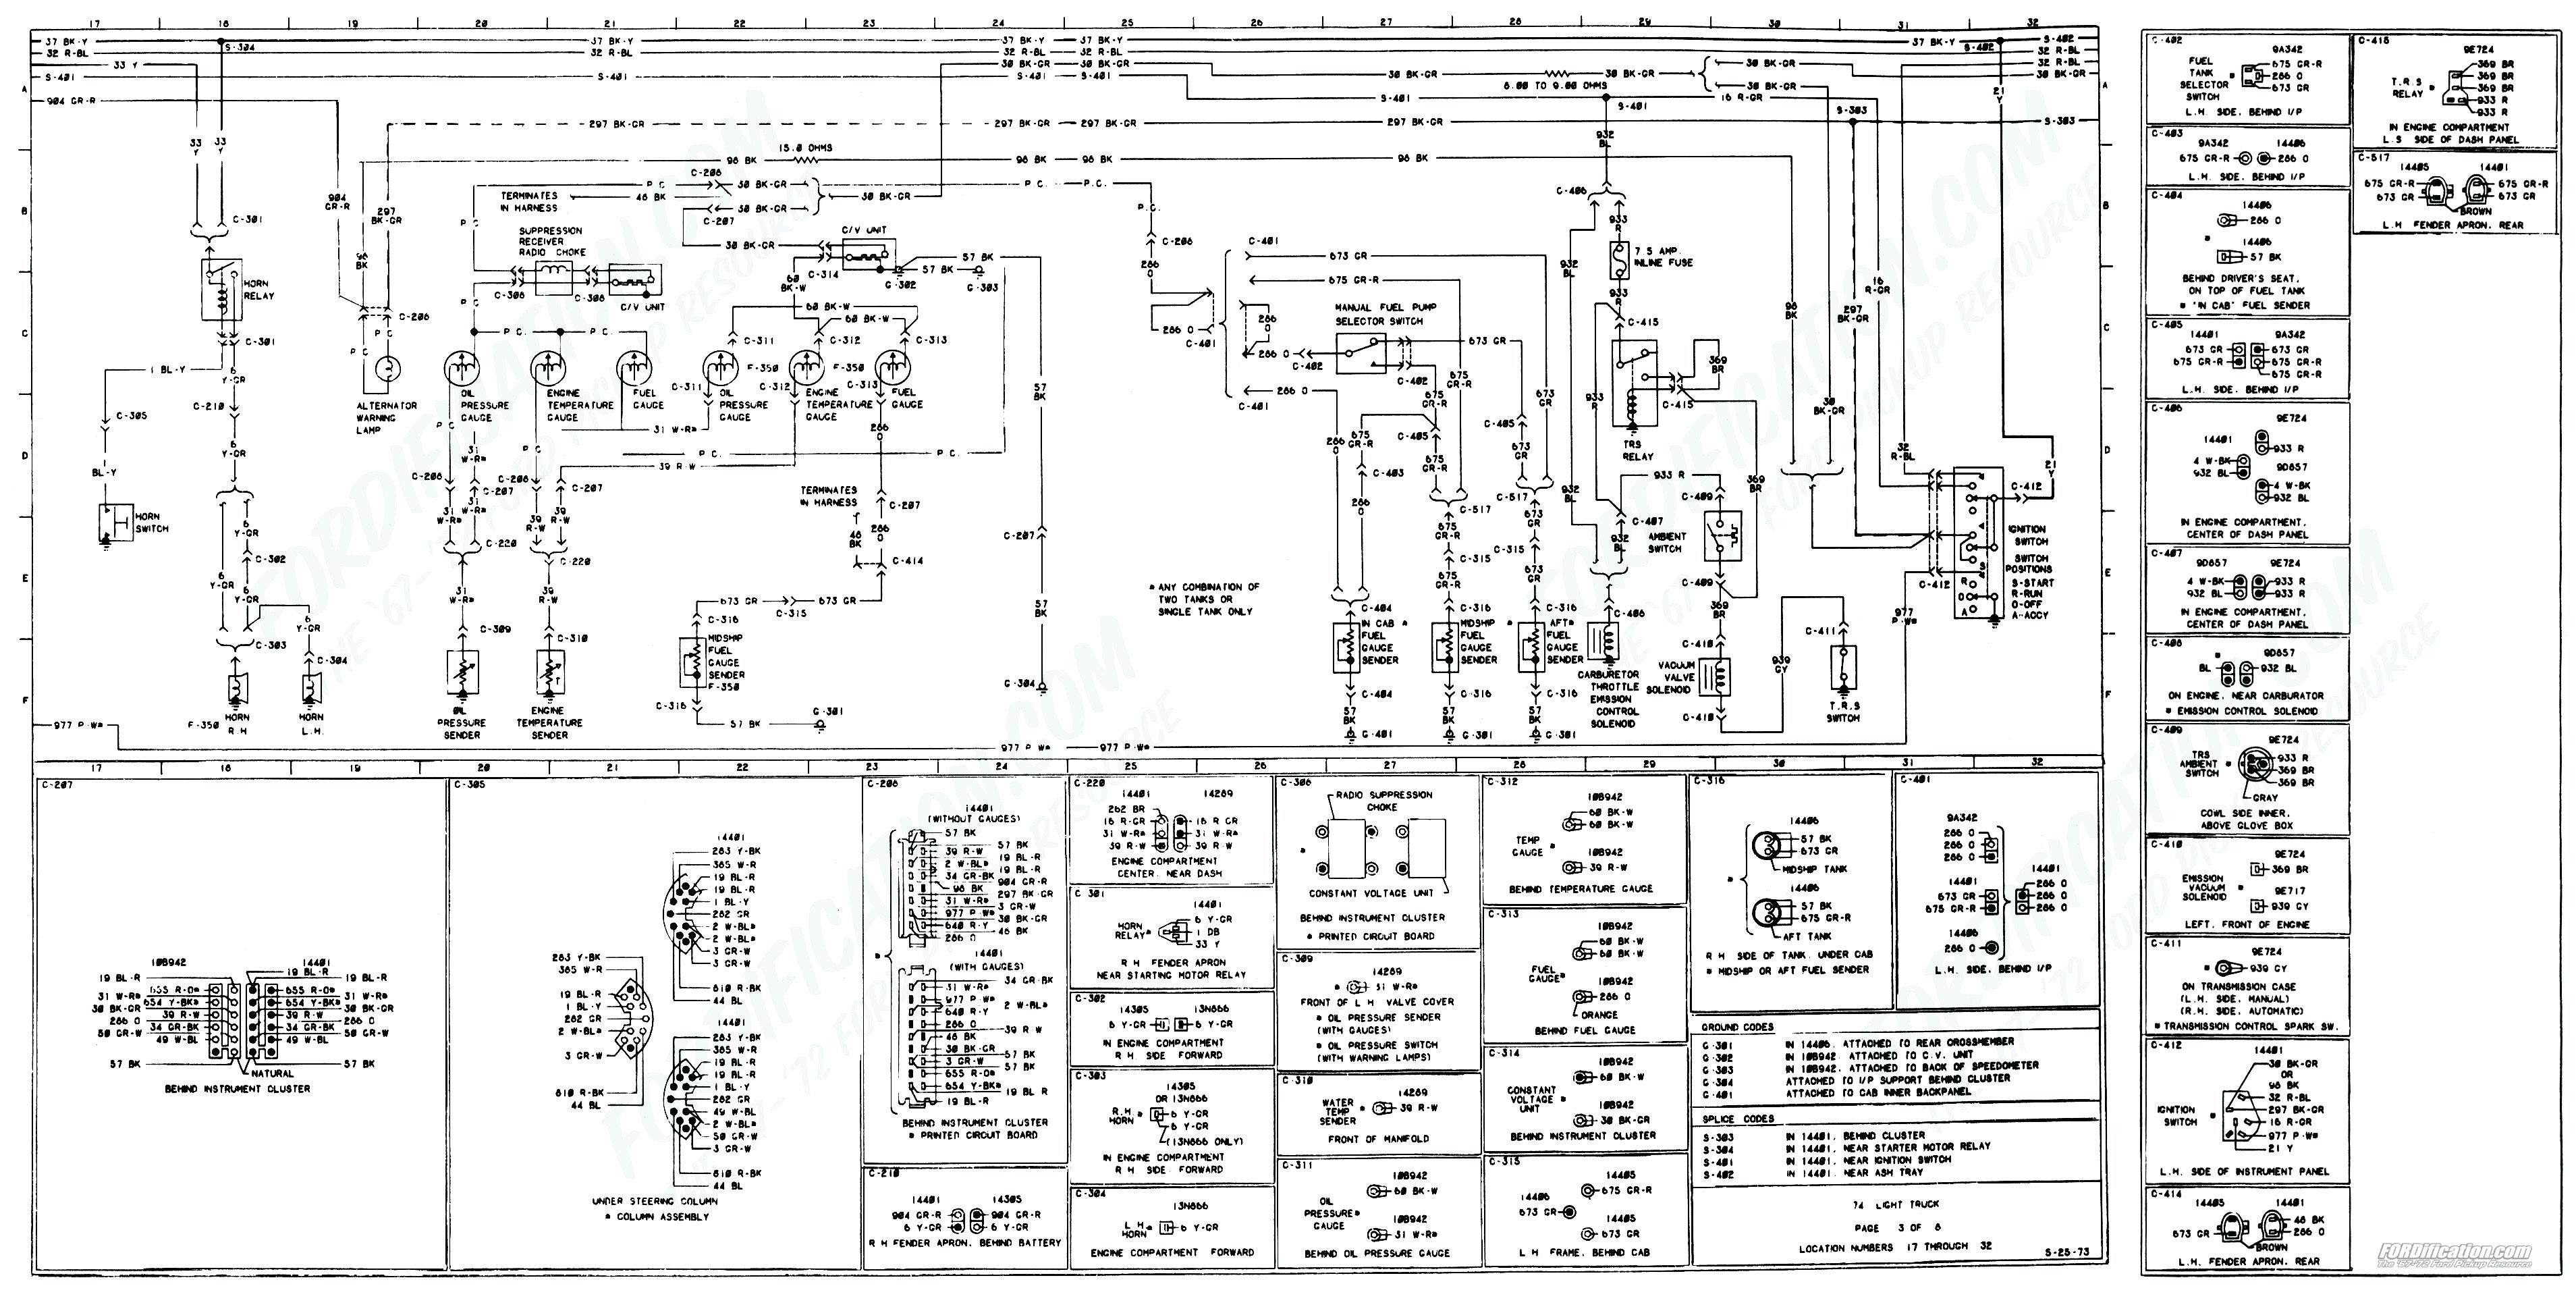 hight resolution of 1979 chevy truck wiring diagram beautiful 1979 chevy truck wiring diagram steering column delay wipers bytes